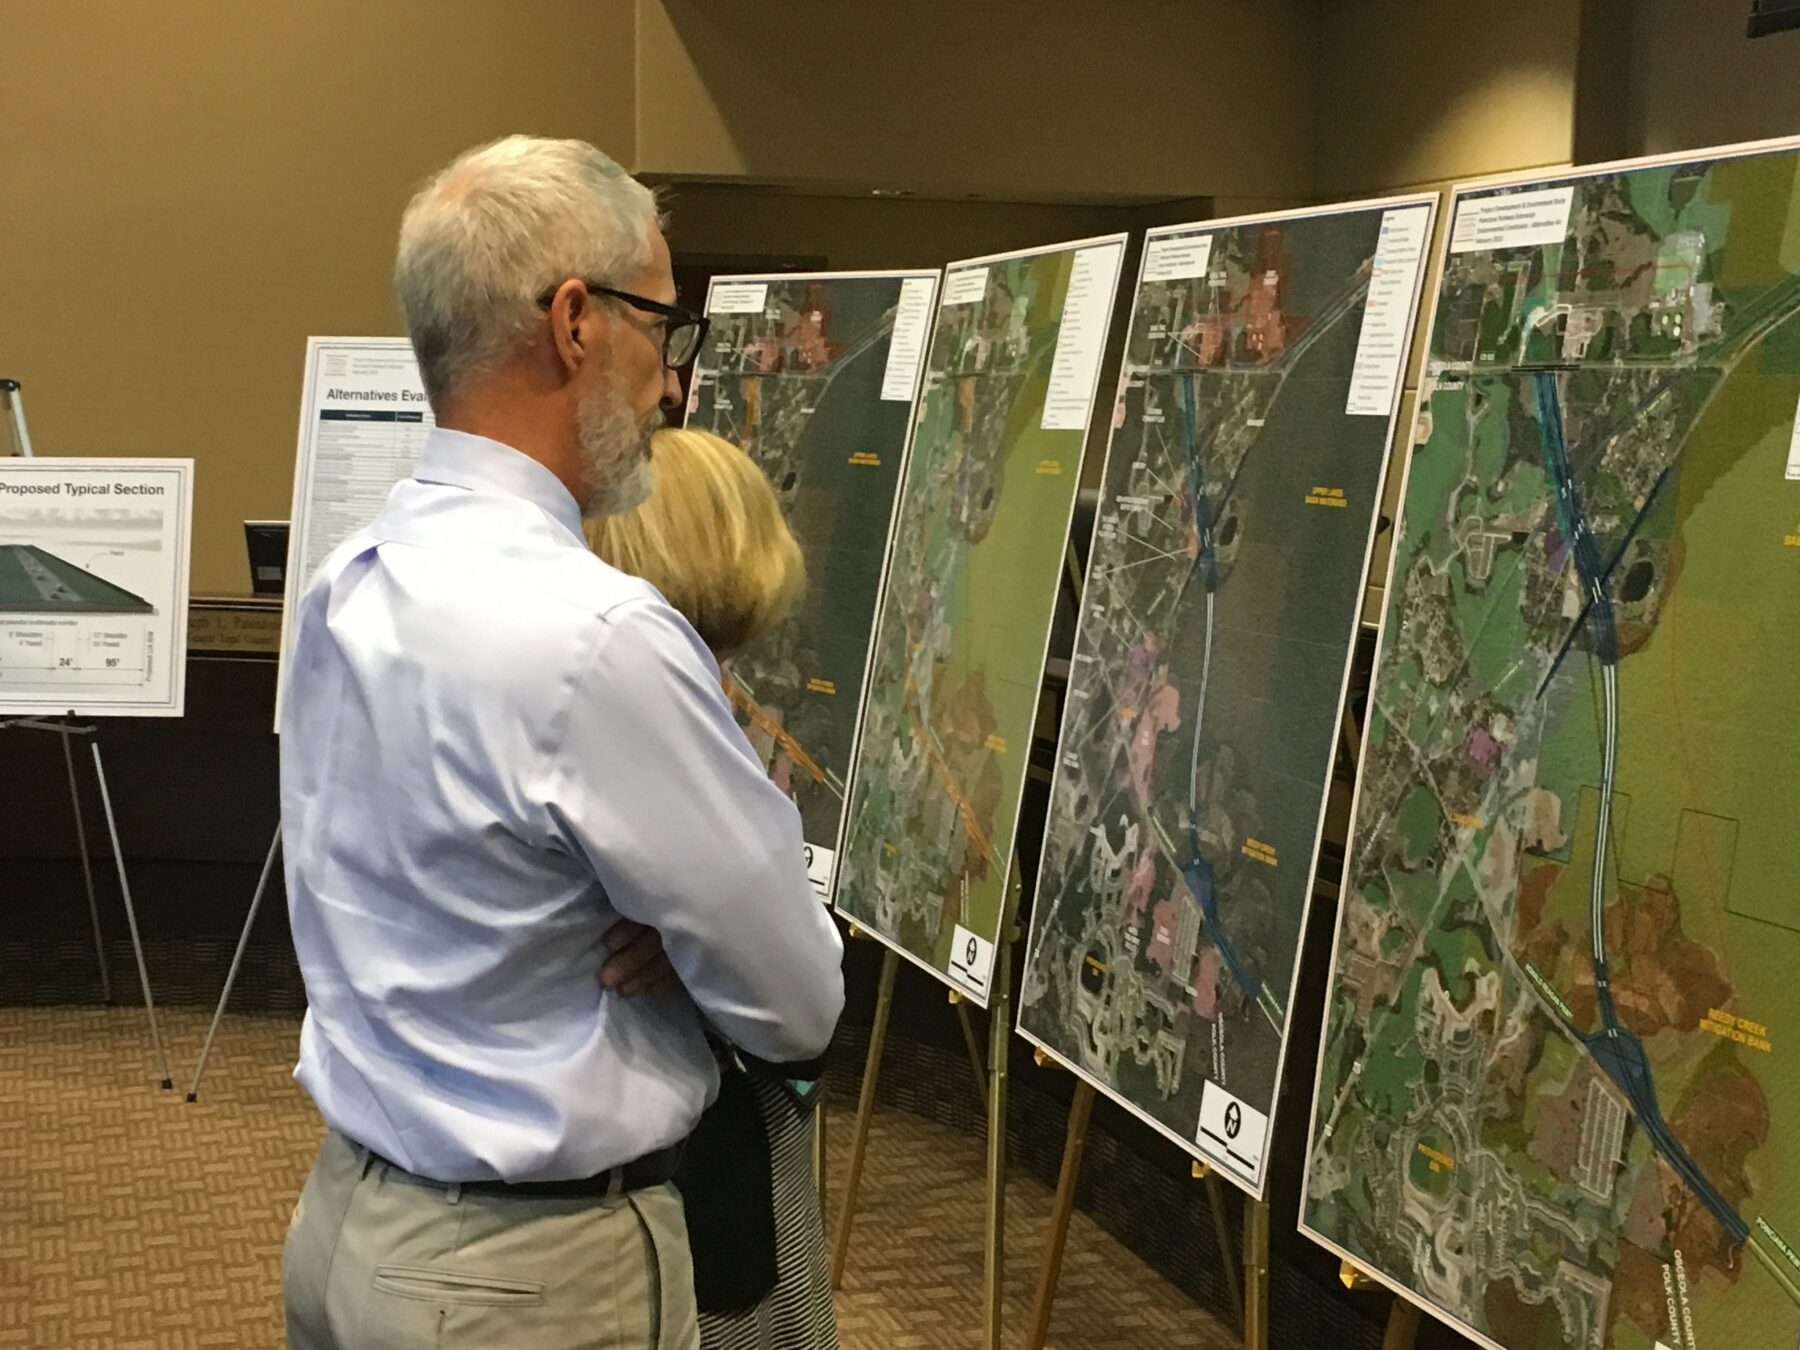 Poinciana Parkway Extension EAG meeting May 21, 2019